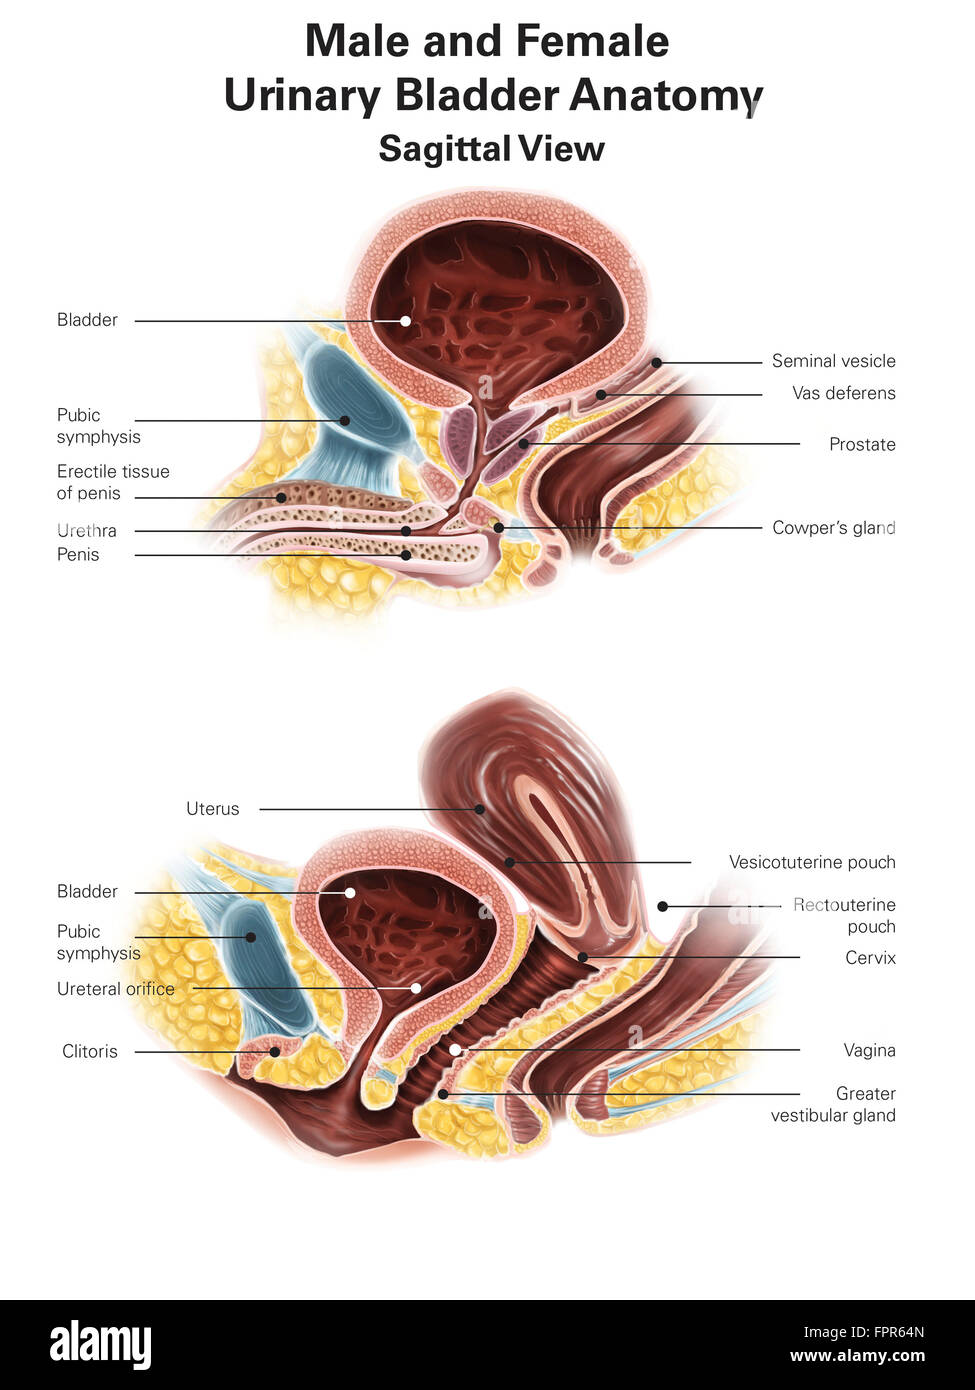 Anatomy Of Male And Female Urinary Bladder With Labels Stock Photo